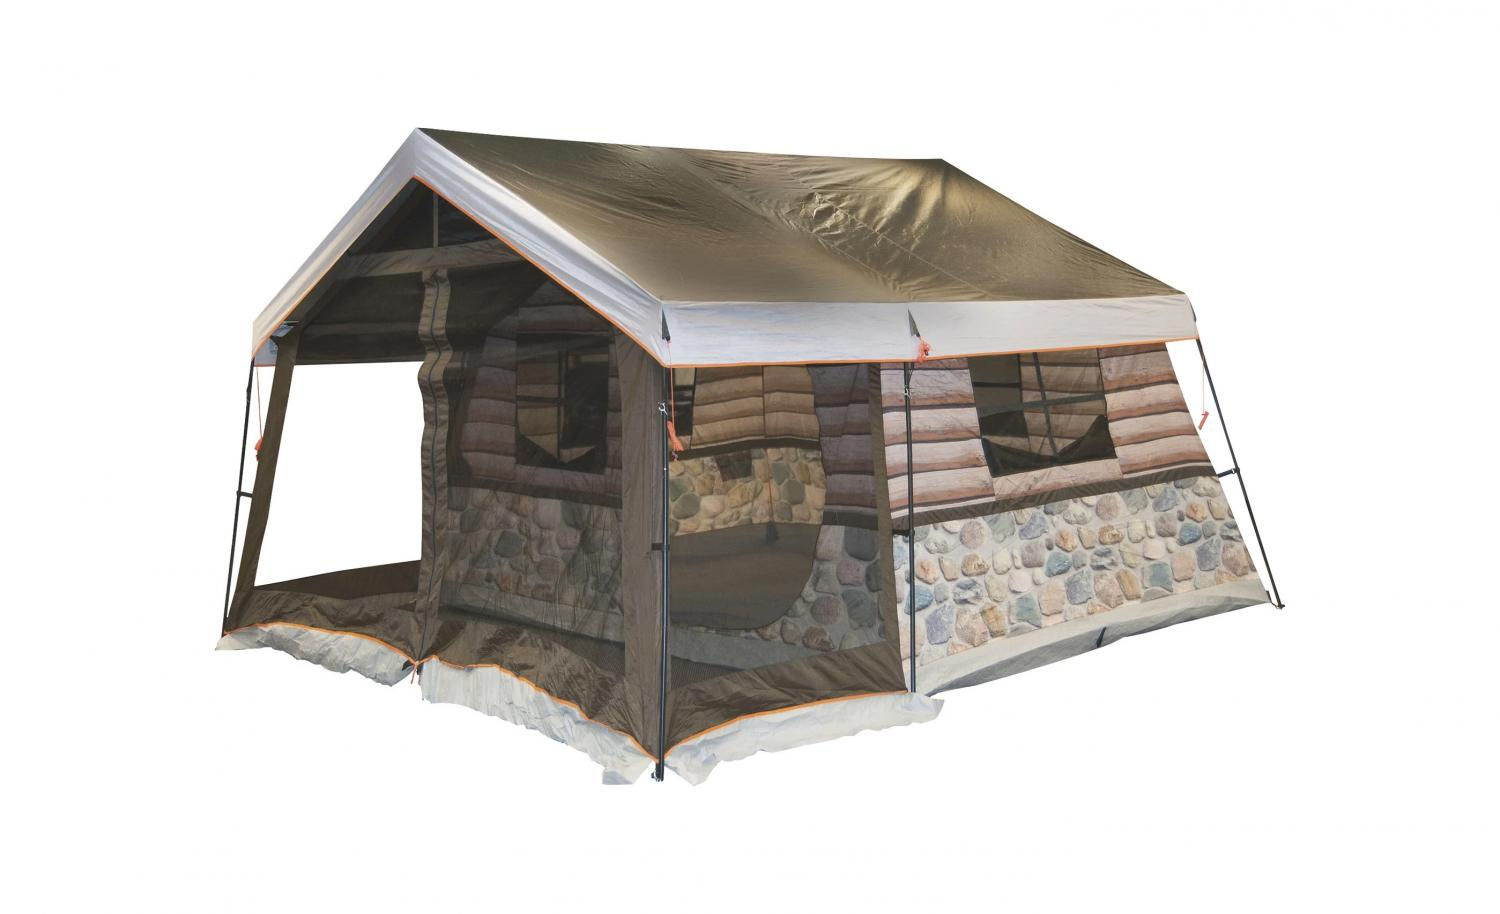 Log Cabin Tent With Front Porch - Giant 8-person tent looks just like a log cabin